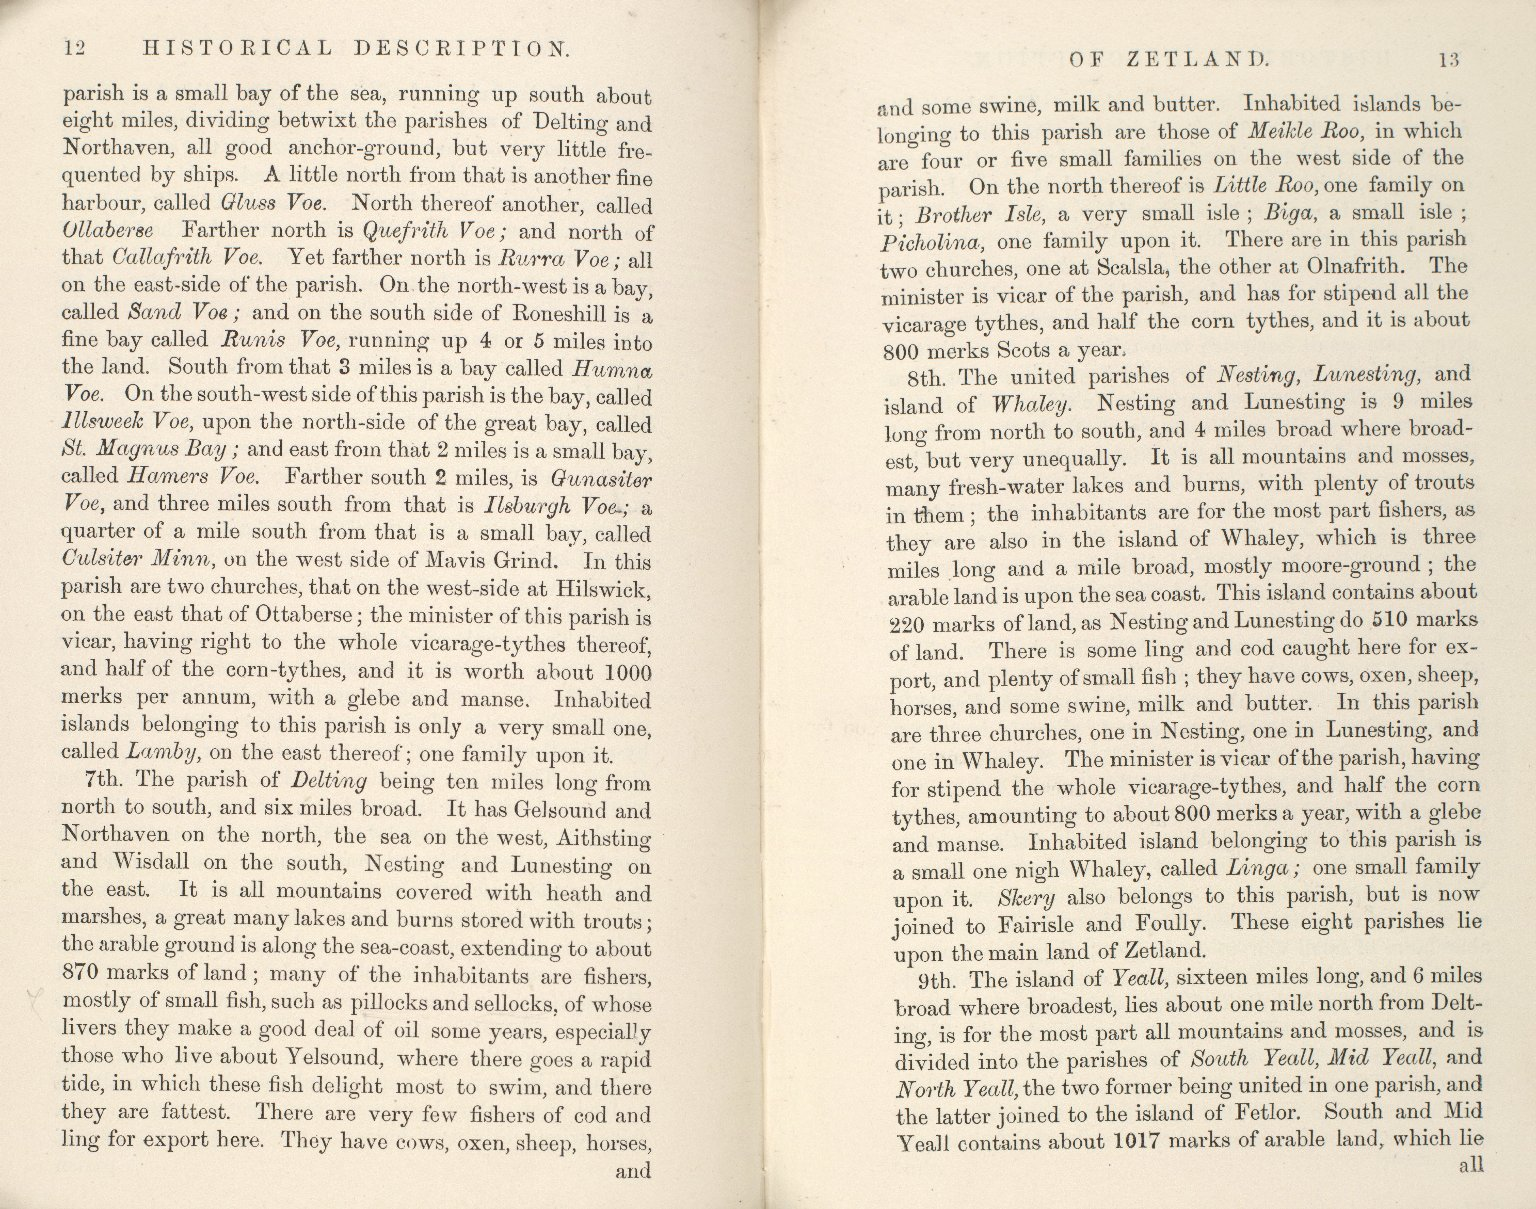 Historical Description of the Zetland Islands in the year 1733. [23 of 25]